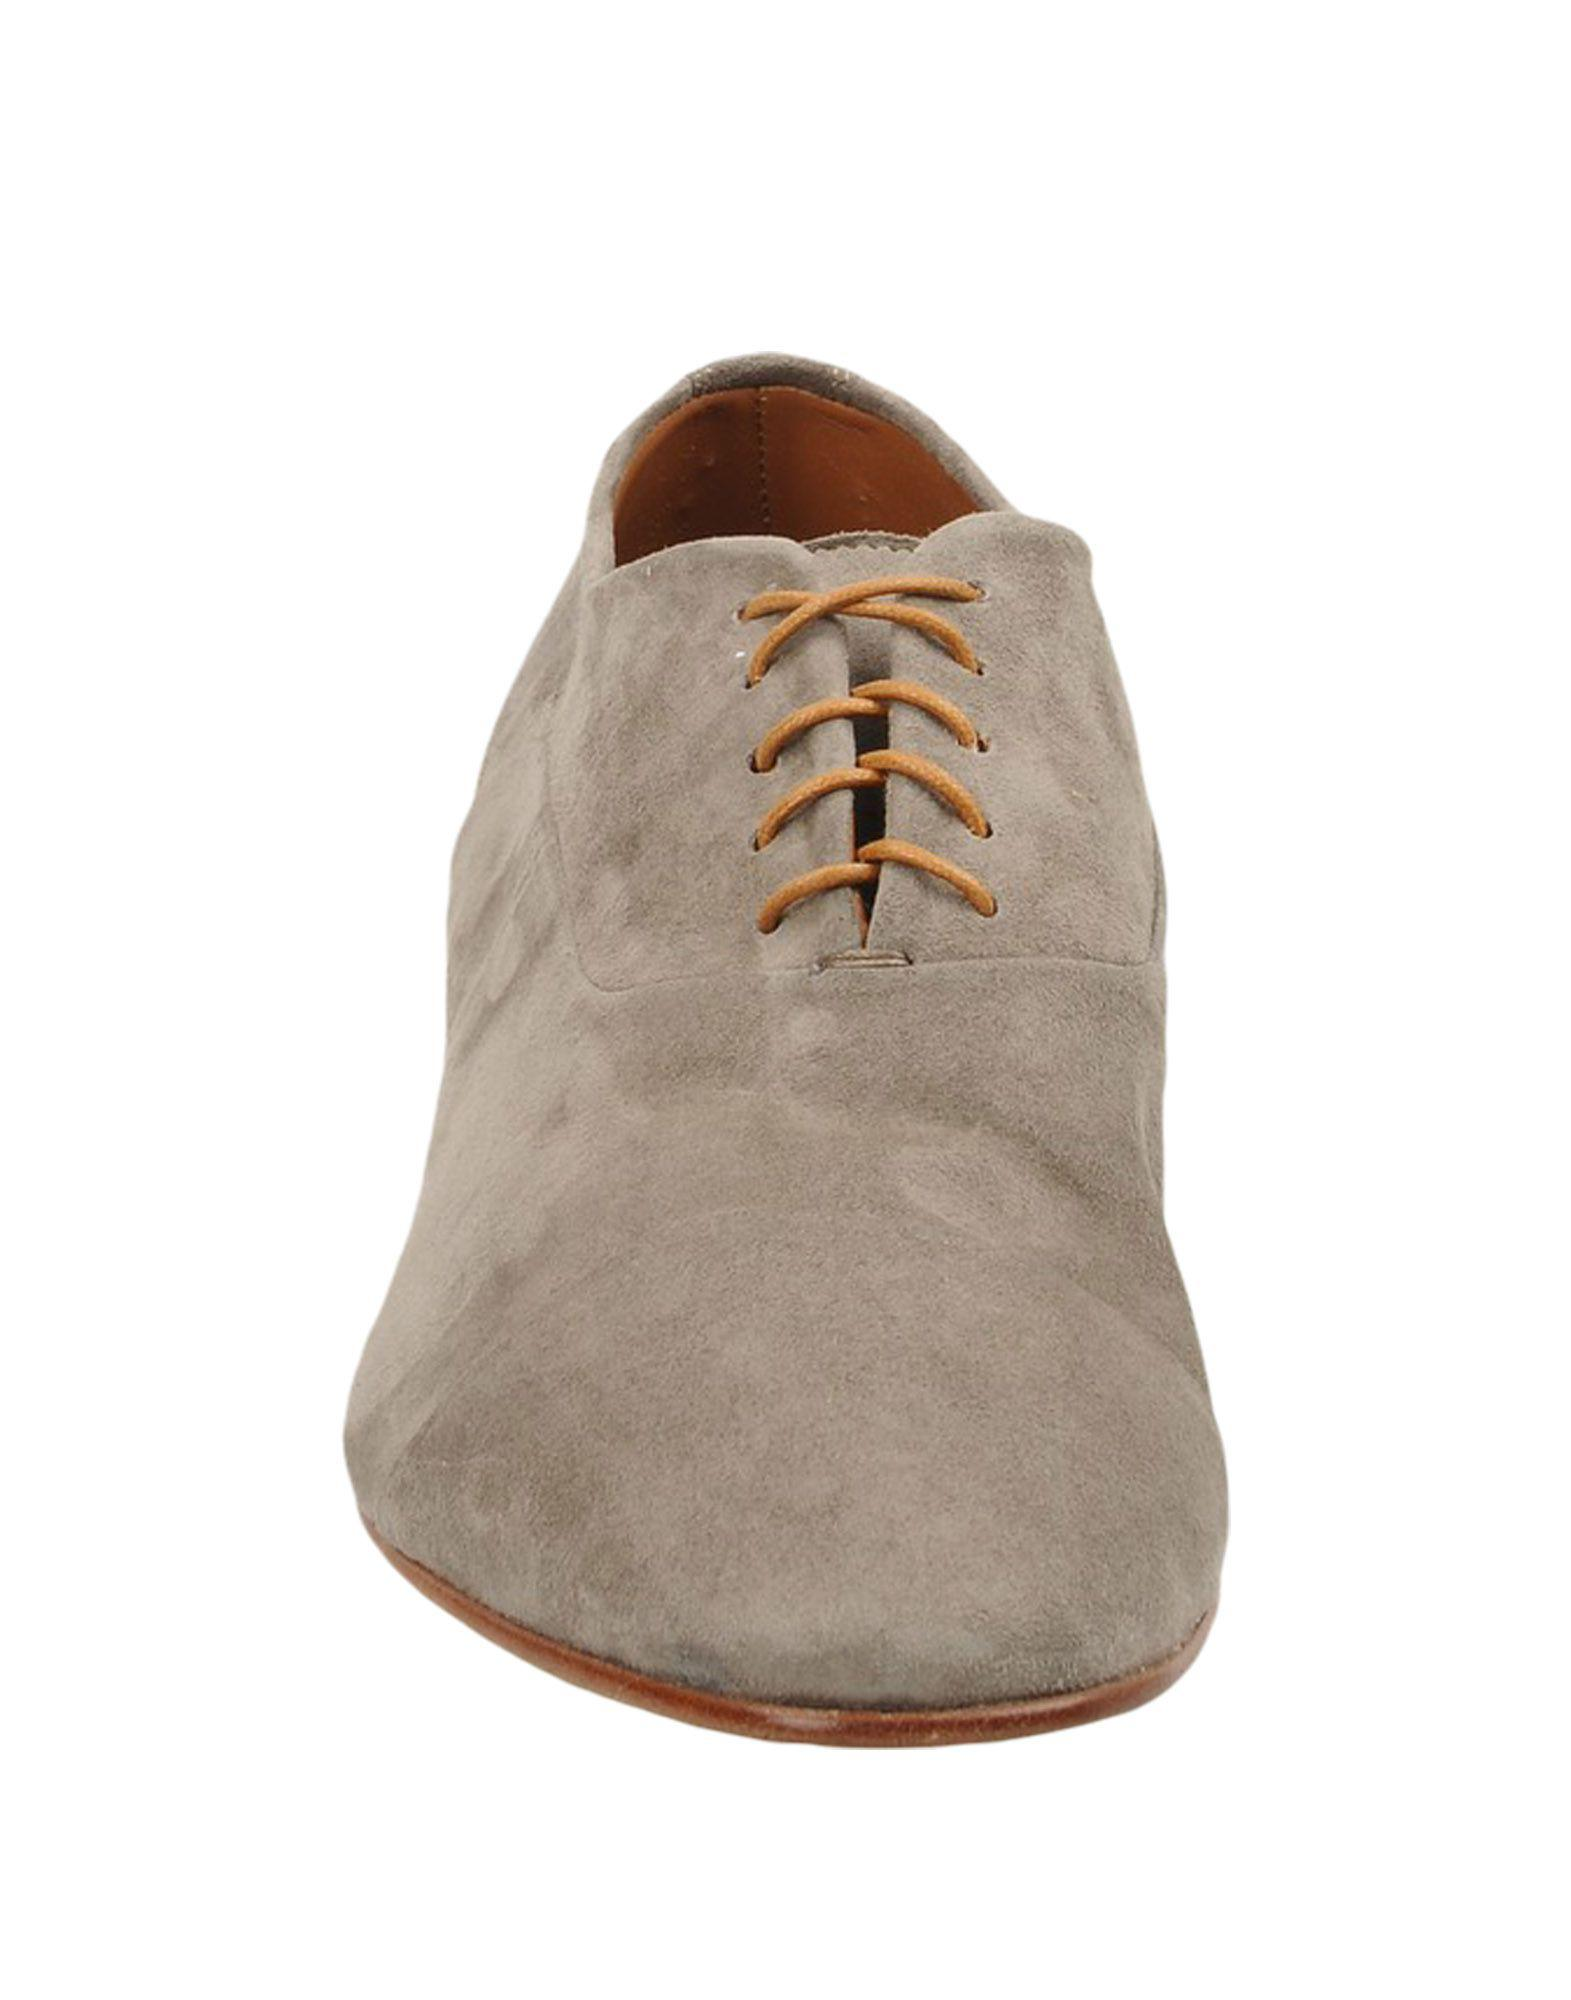 8 Suede Lace-up Shoes in Grey (Grey) for Men